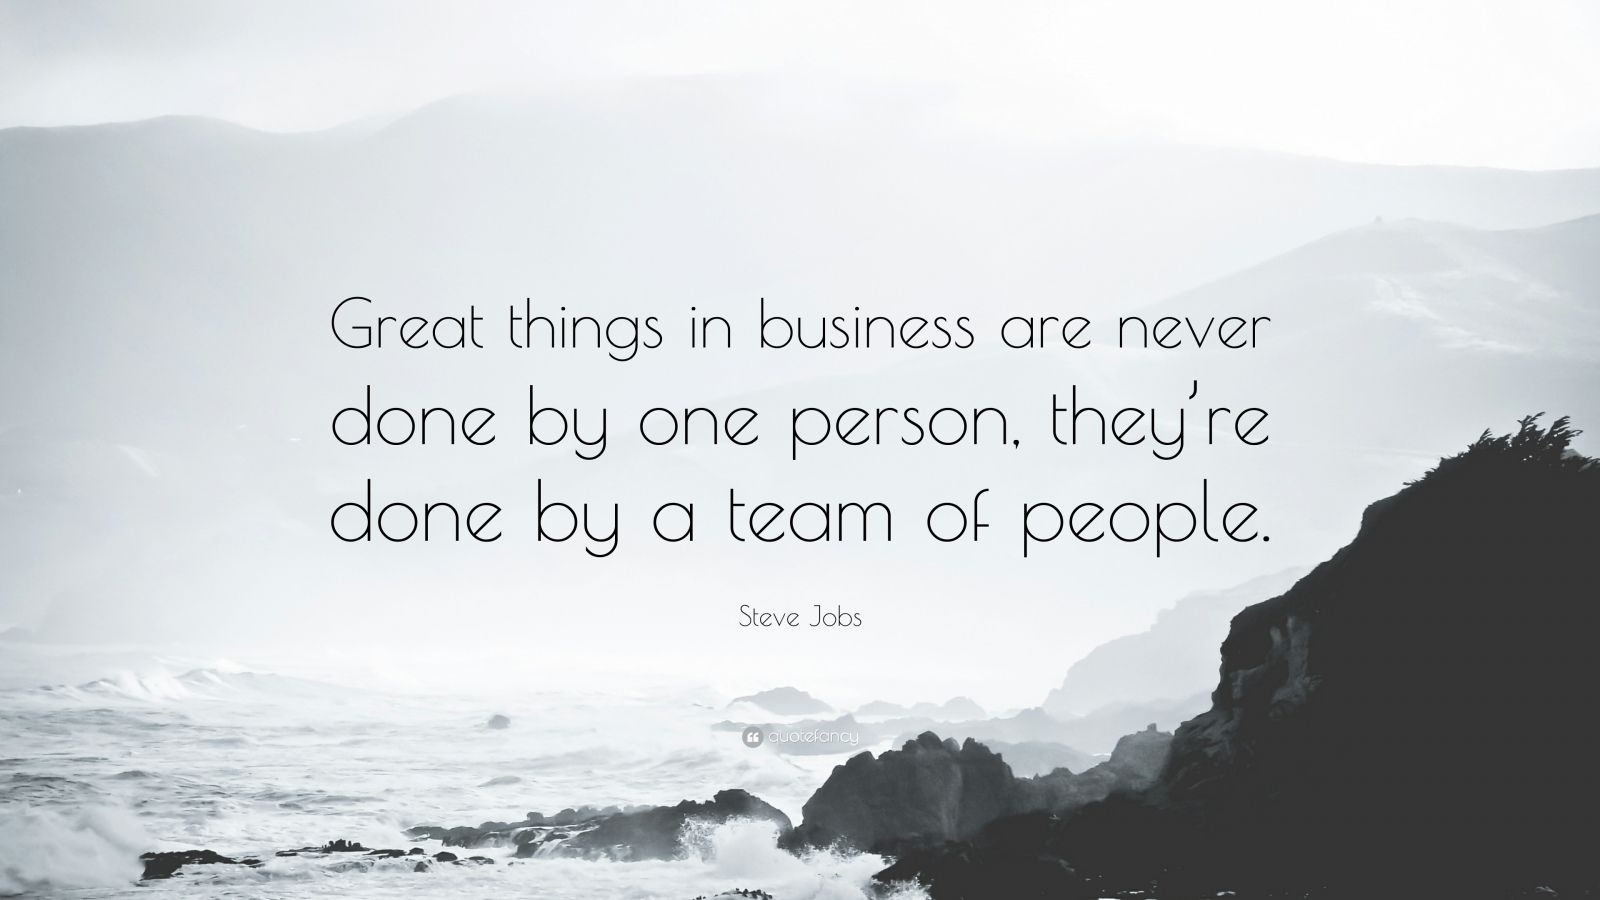 Images Of Inspiring Quotes Wallpaper Steve Jobs Quote Great Things In Business Are Never Done